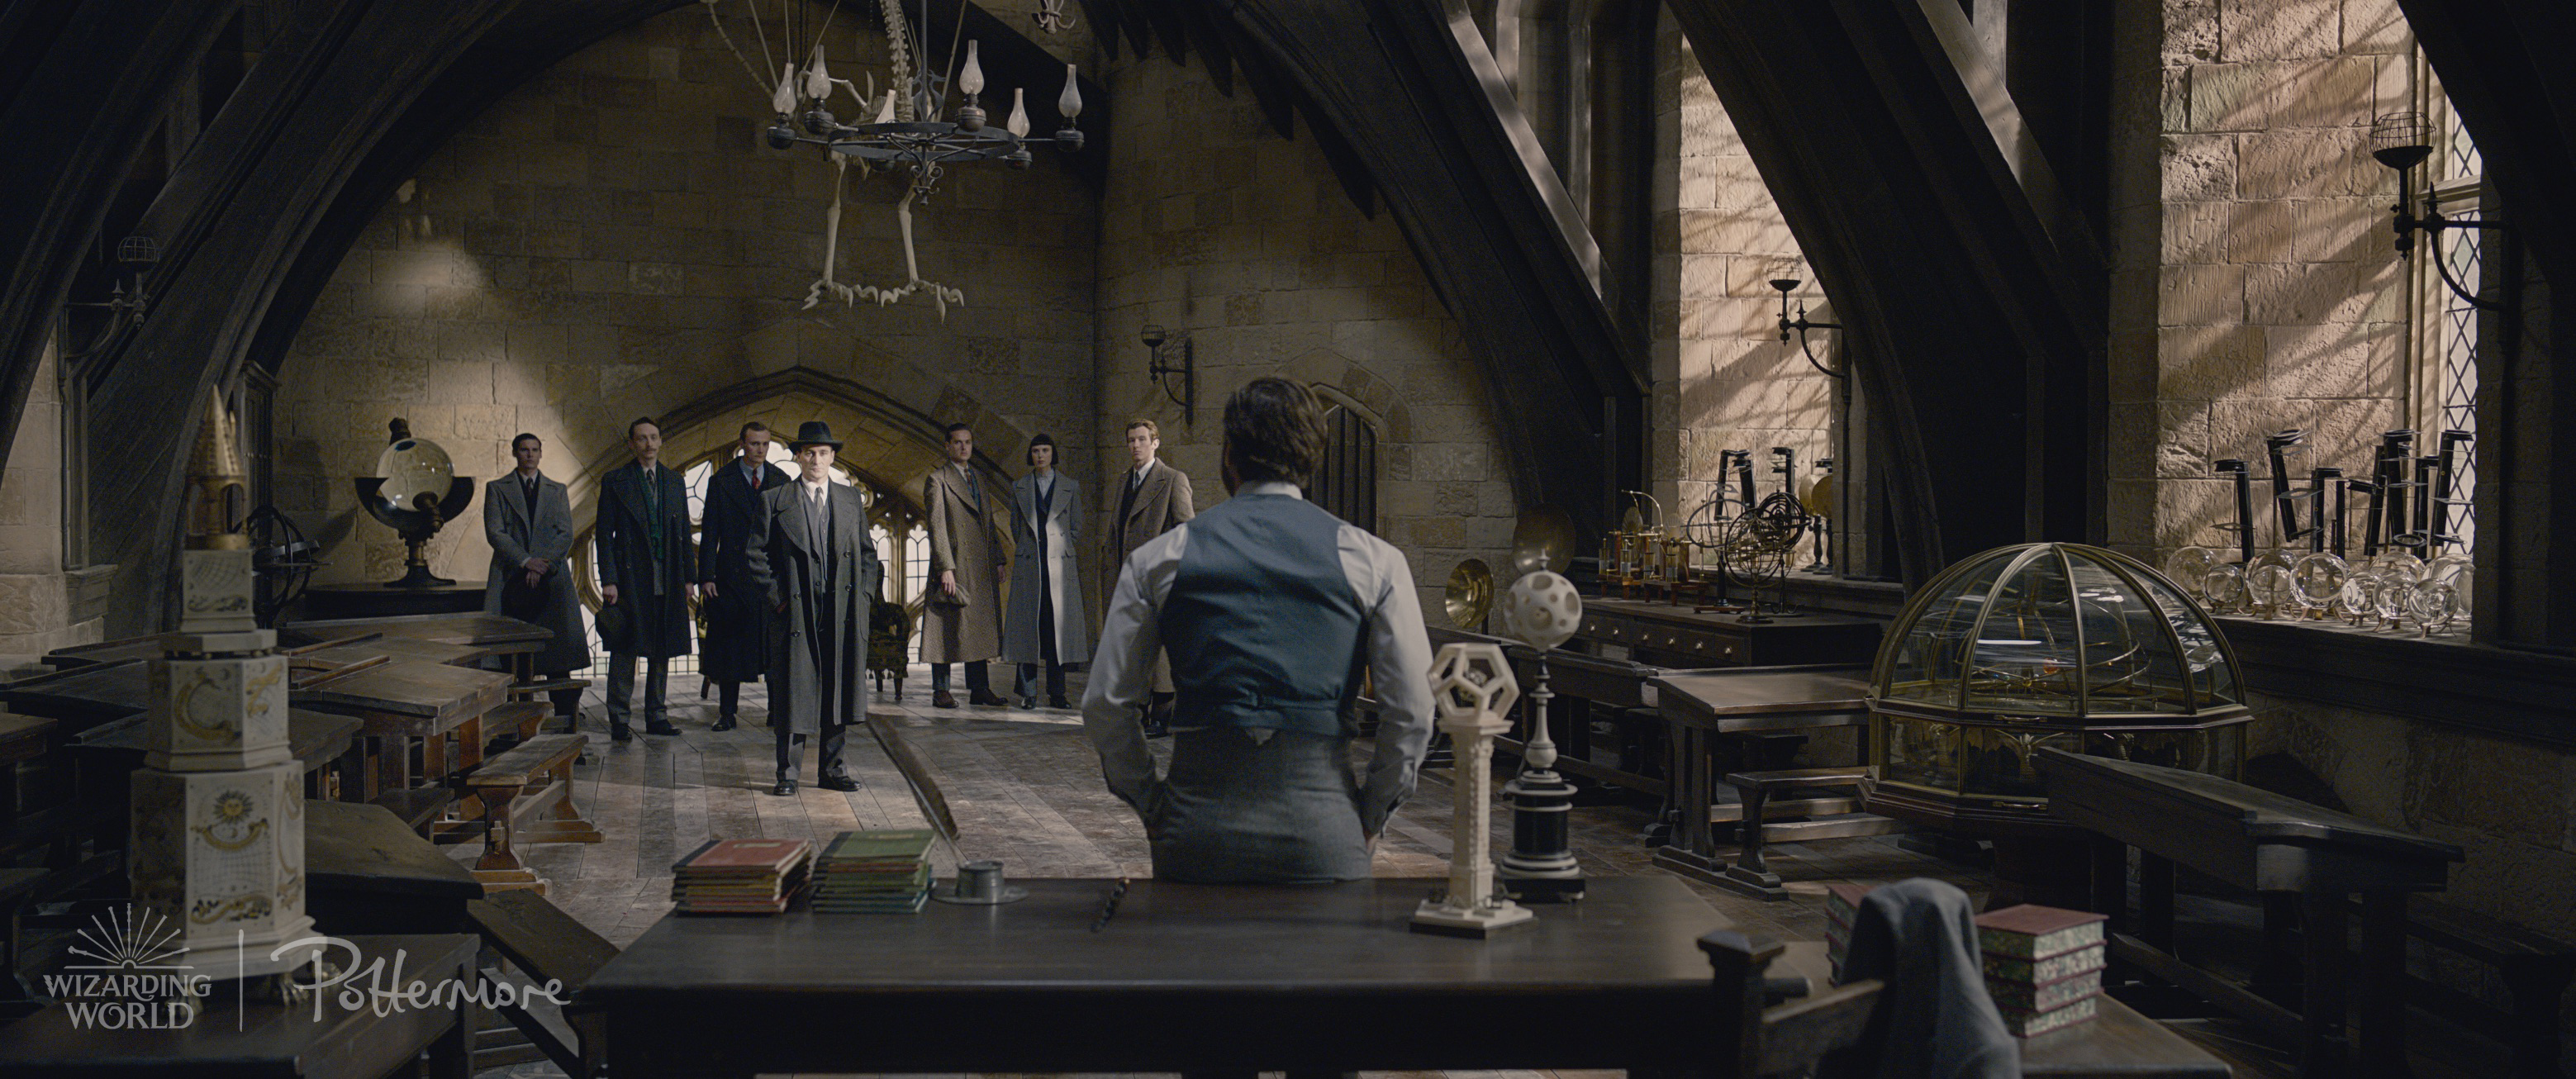 Dumbledore in Hogwarts classroom in the Fantastic Beasts: Crimes of Grindelwald trailer